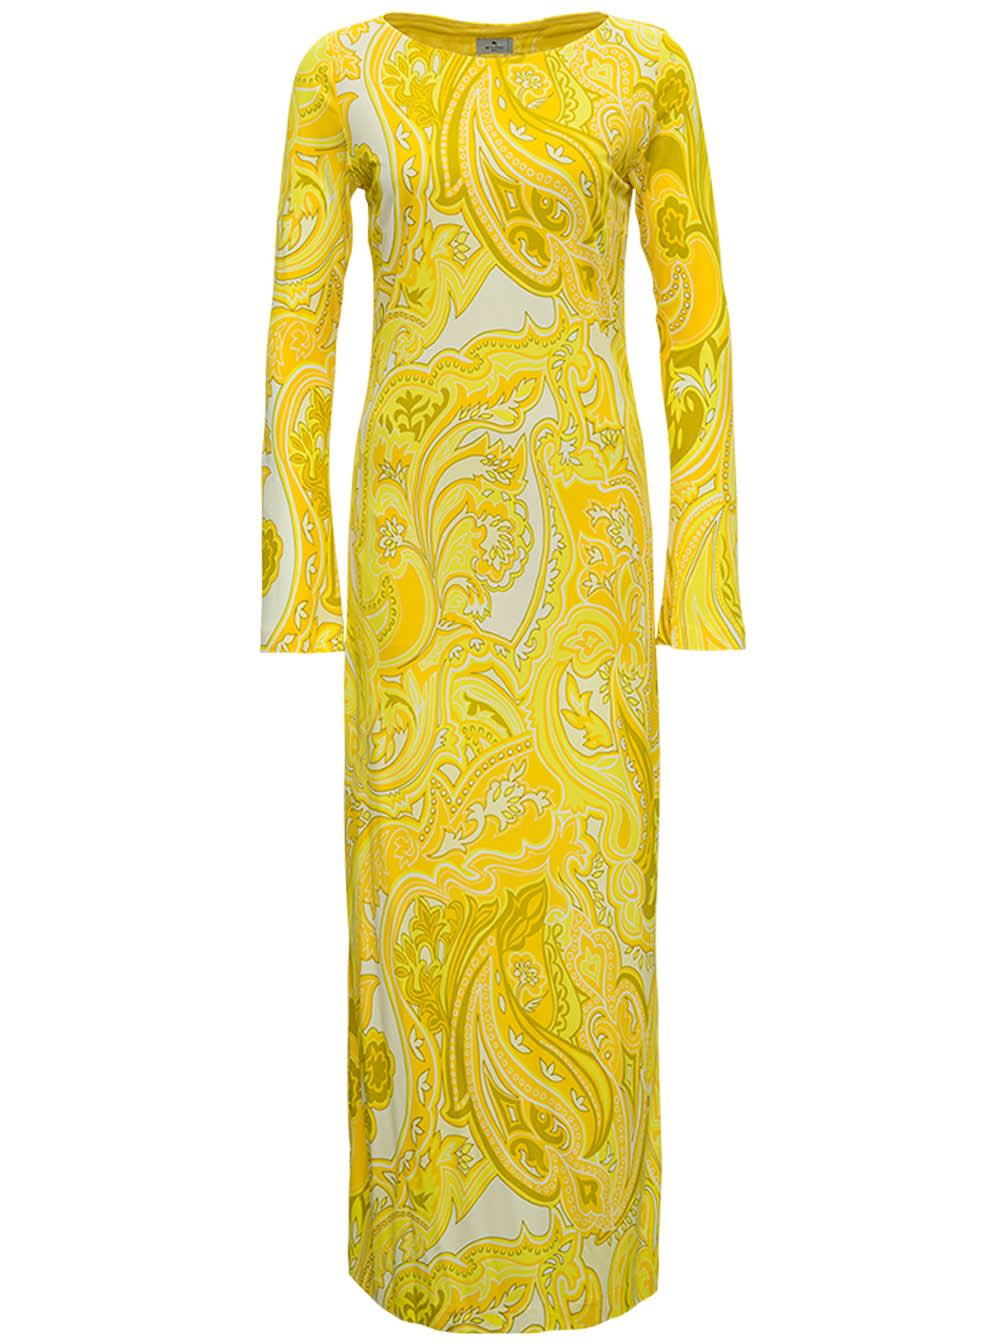 Buy Etro Corfu Dress In Printed Jersey online, shop Etro with free shipping